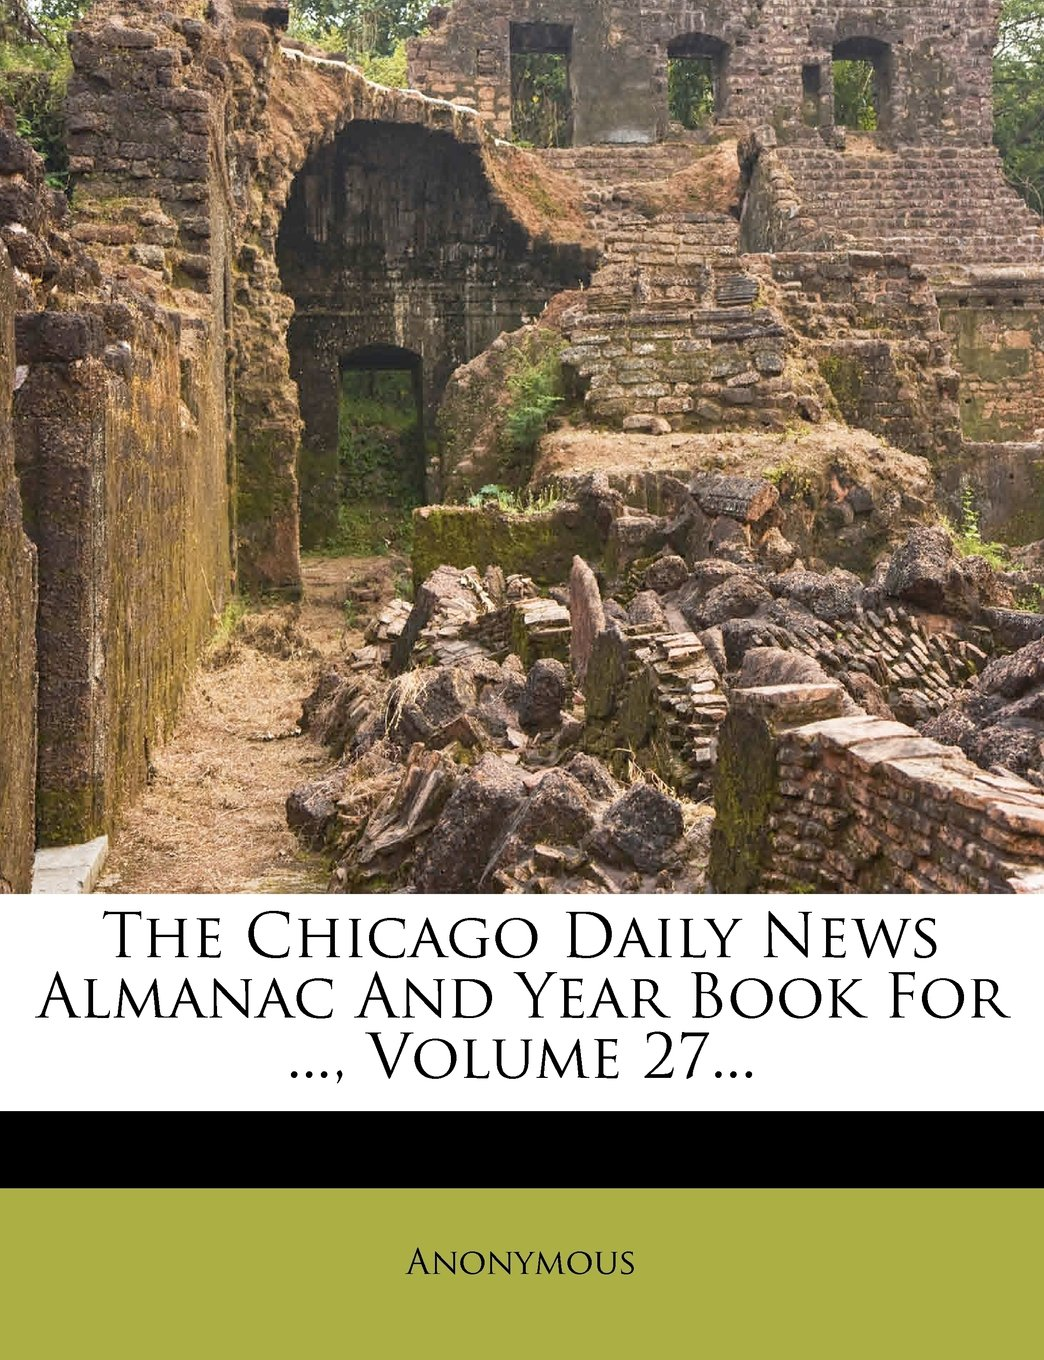 The Chicago Daily News Almanac And Year Book For ..., Volume 27... PDF